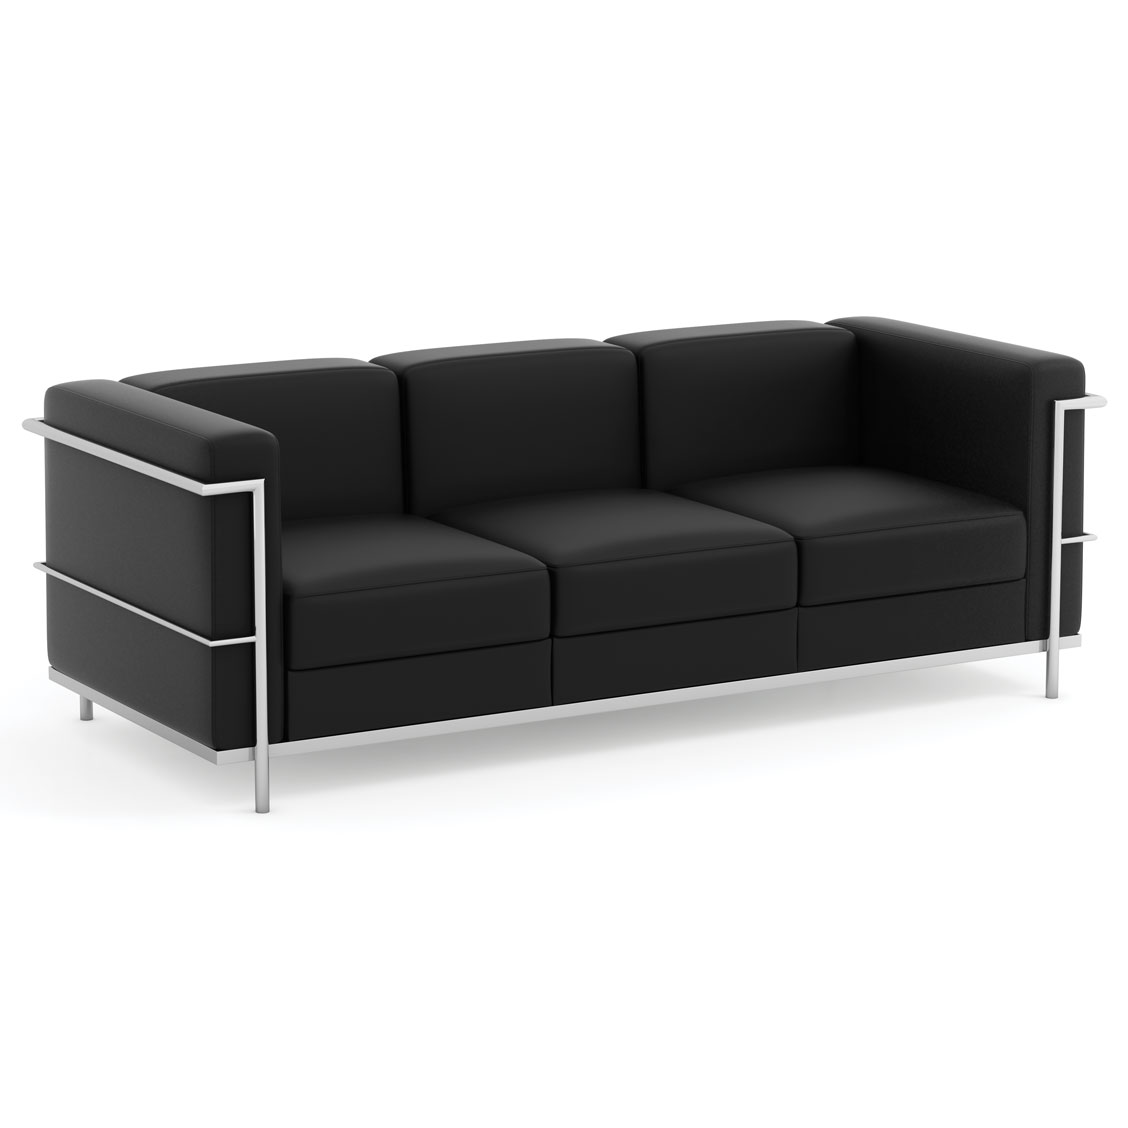 OfficeSource Madison Collection Sofa with Chrome Exposed Frame